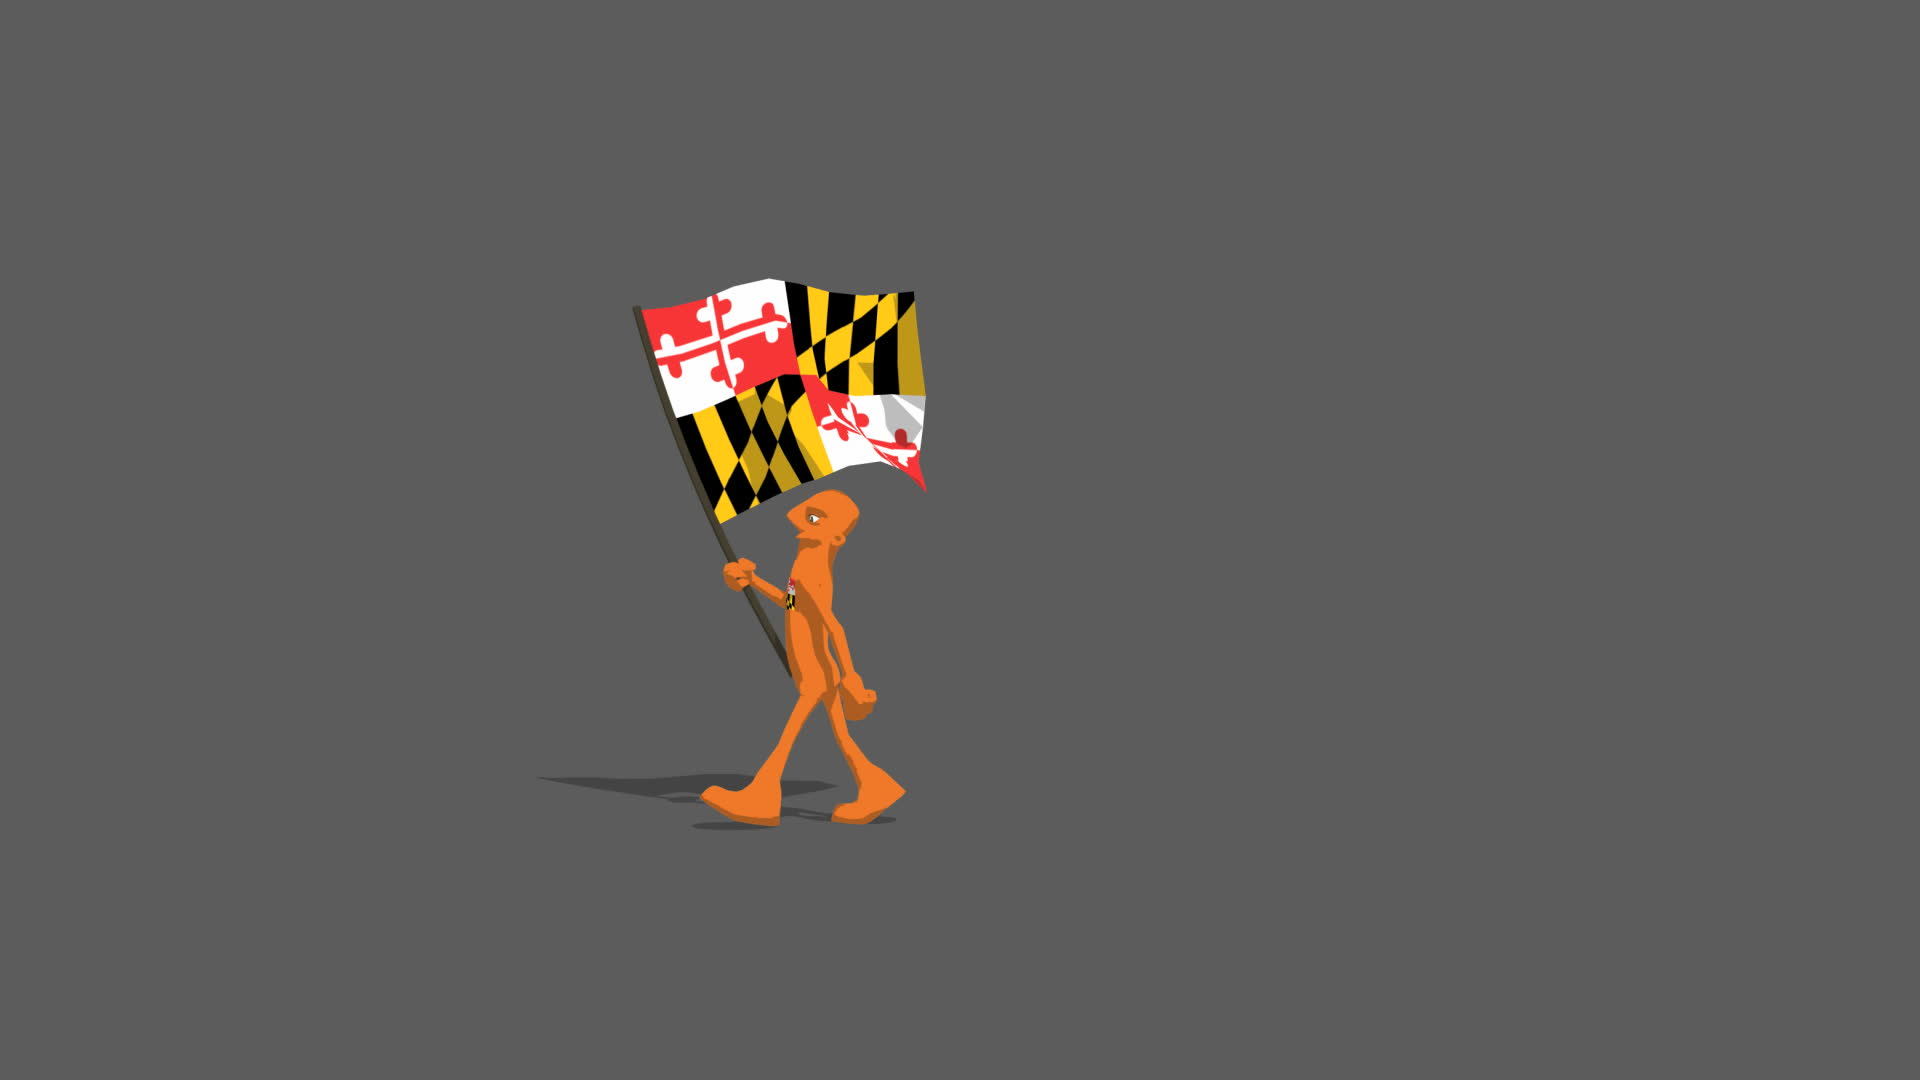 us maryland National Flag Carried By Character A marching type walk 1920x1080